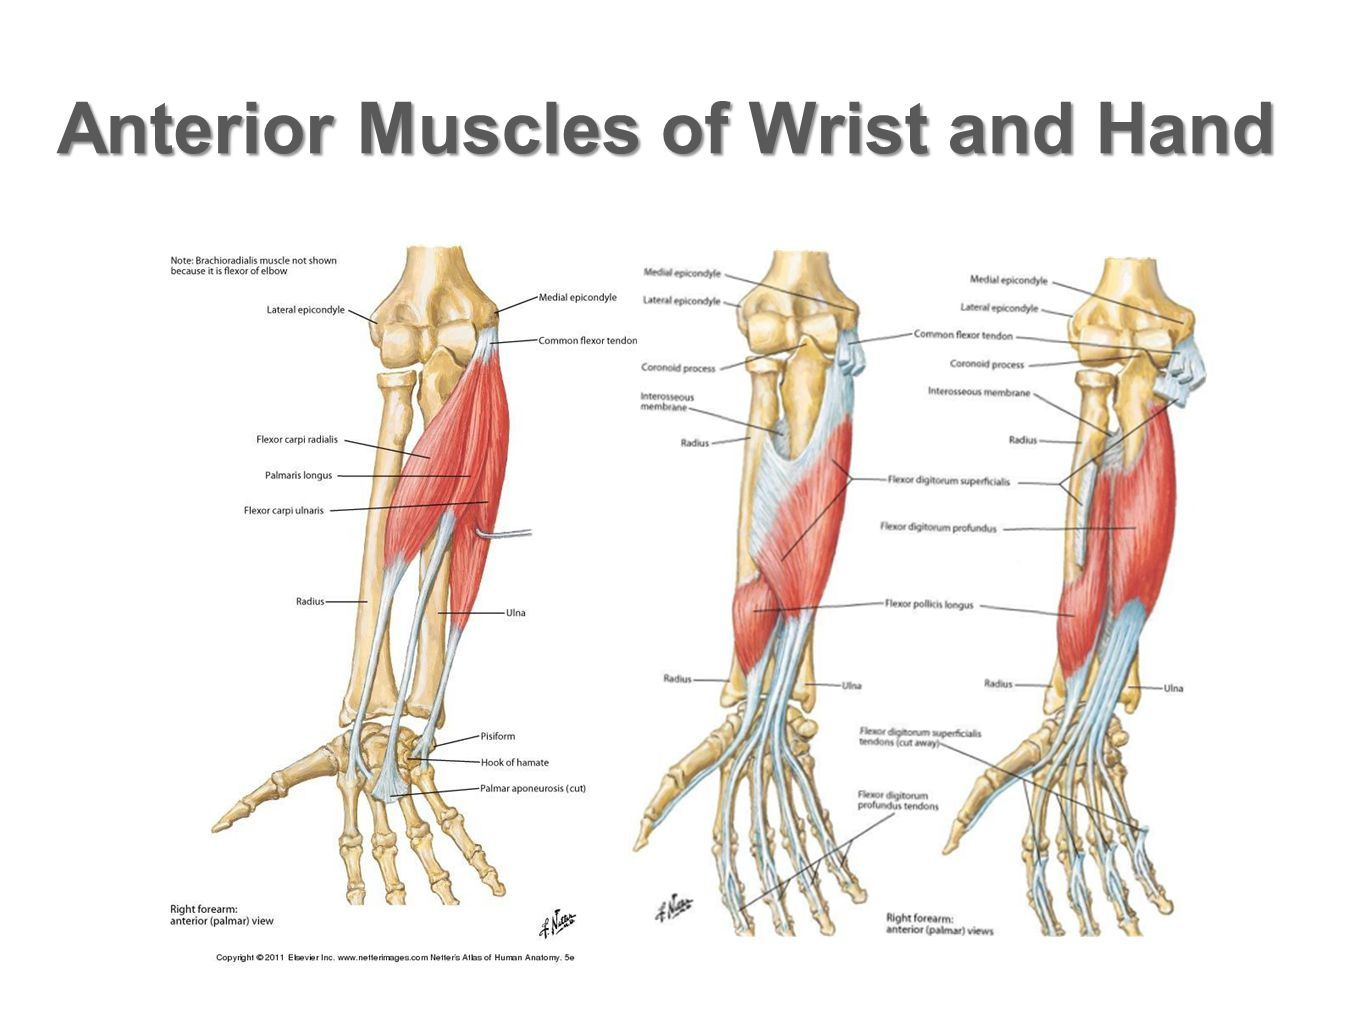 Anterior Muscles of Wrist and Hand